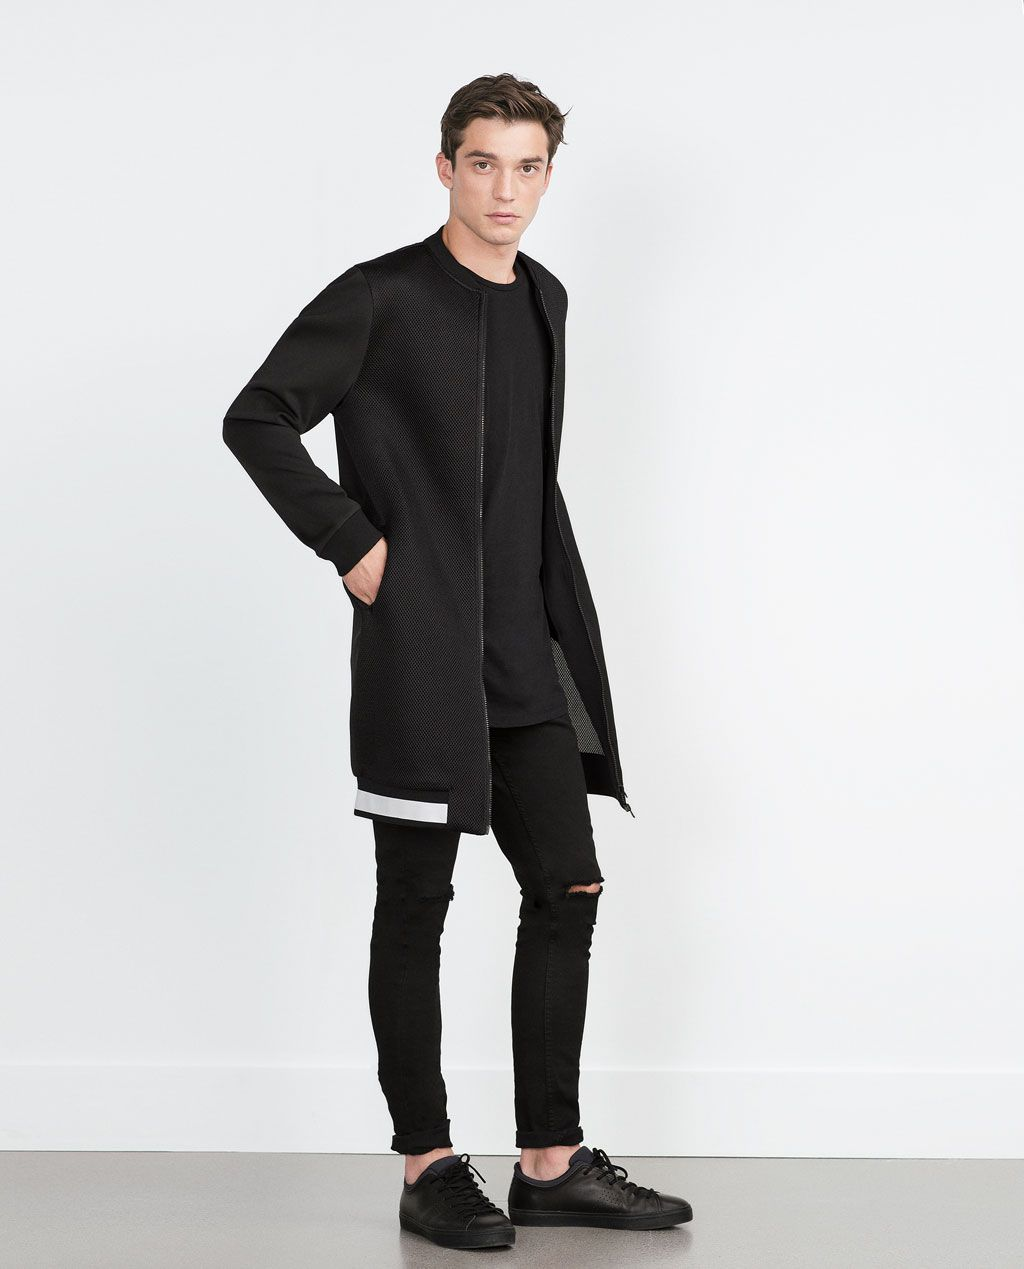 Long Bomber Jacket Jackets Man Collection Aw15 Long Bomber Jacket Bomber Jacket Trench Coat Men [ 1269 x 1024 Pixel ]